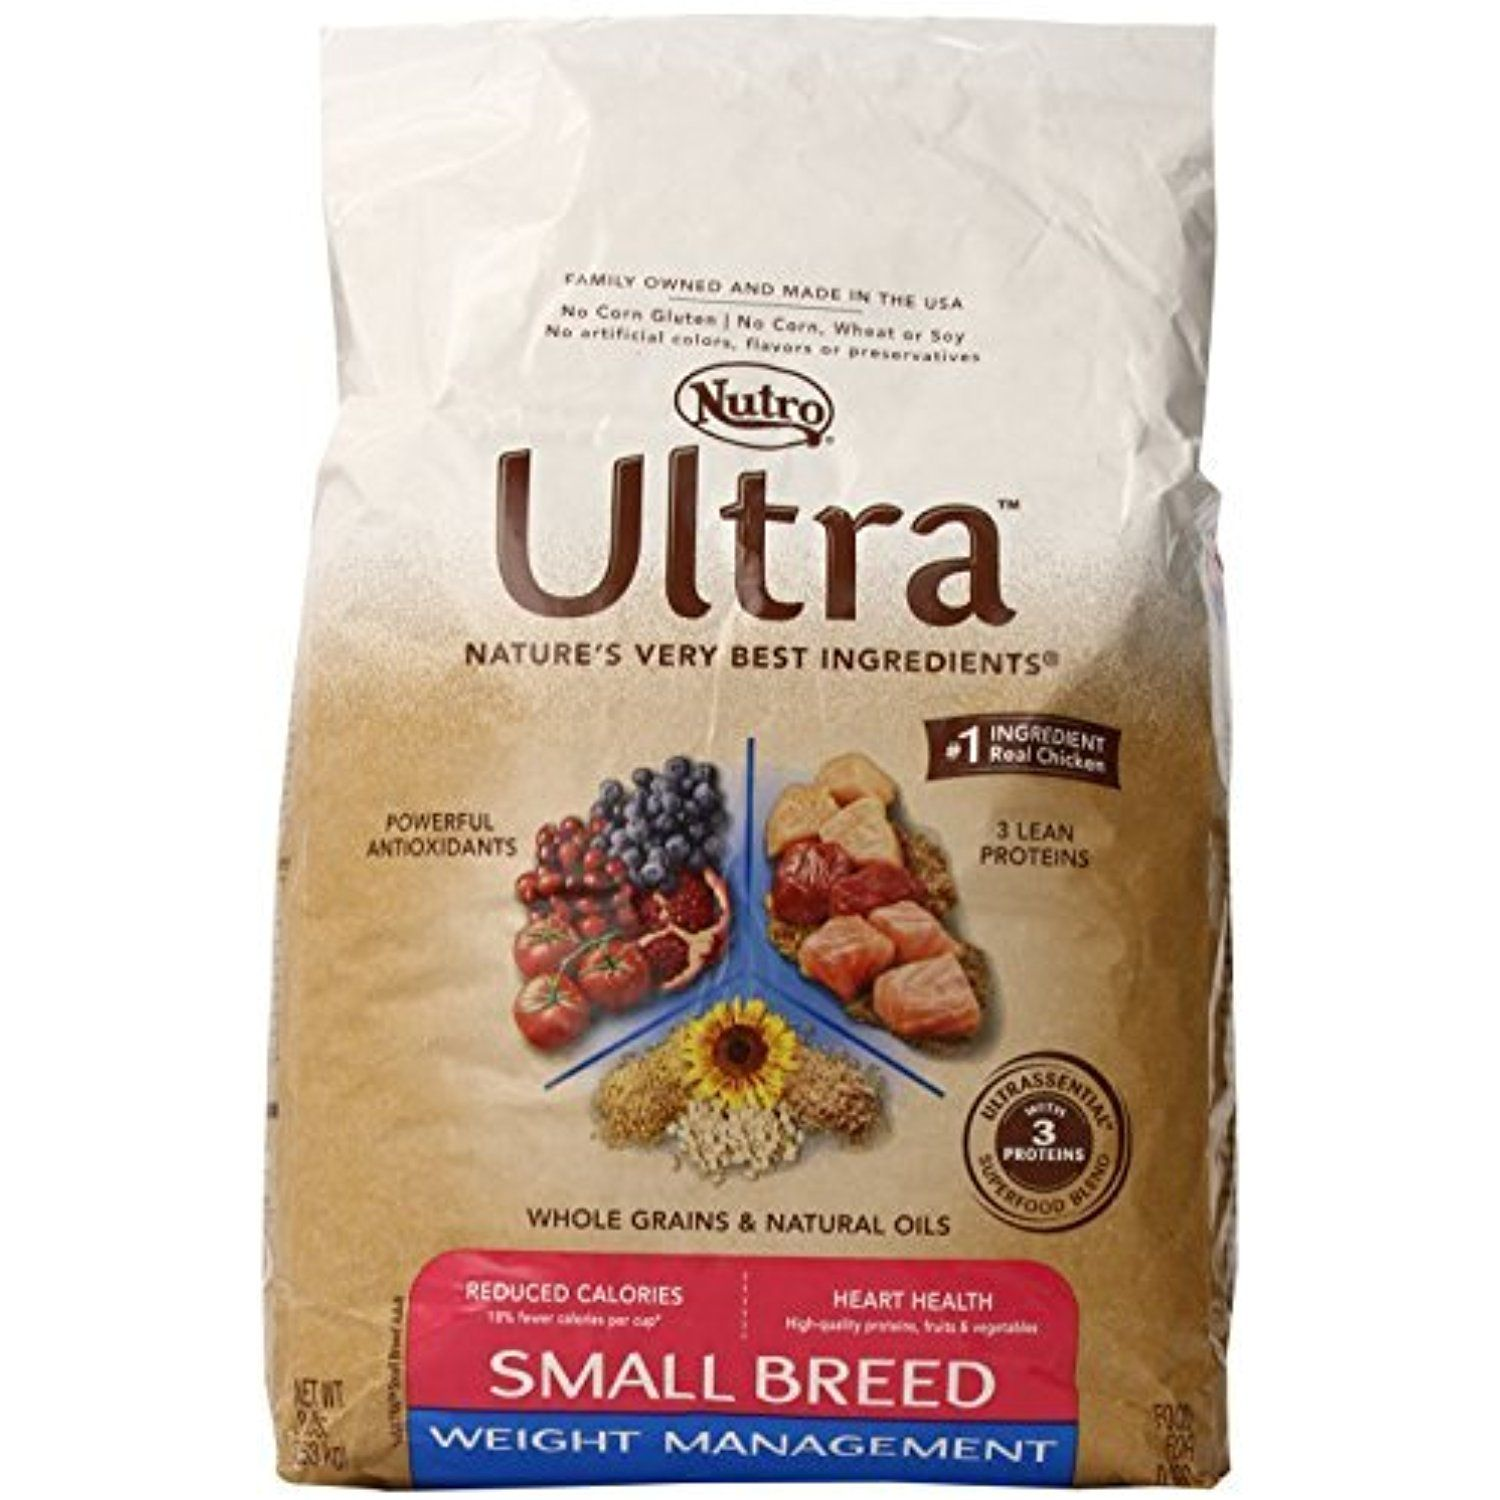 Nutro Ultra Small Breed Weight Management Dry Dog Food 8 Lbs By